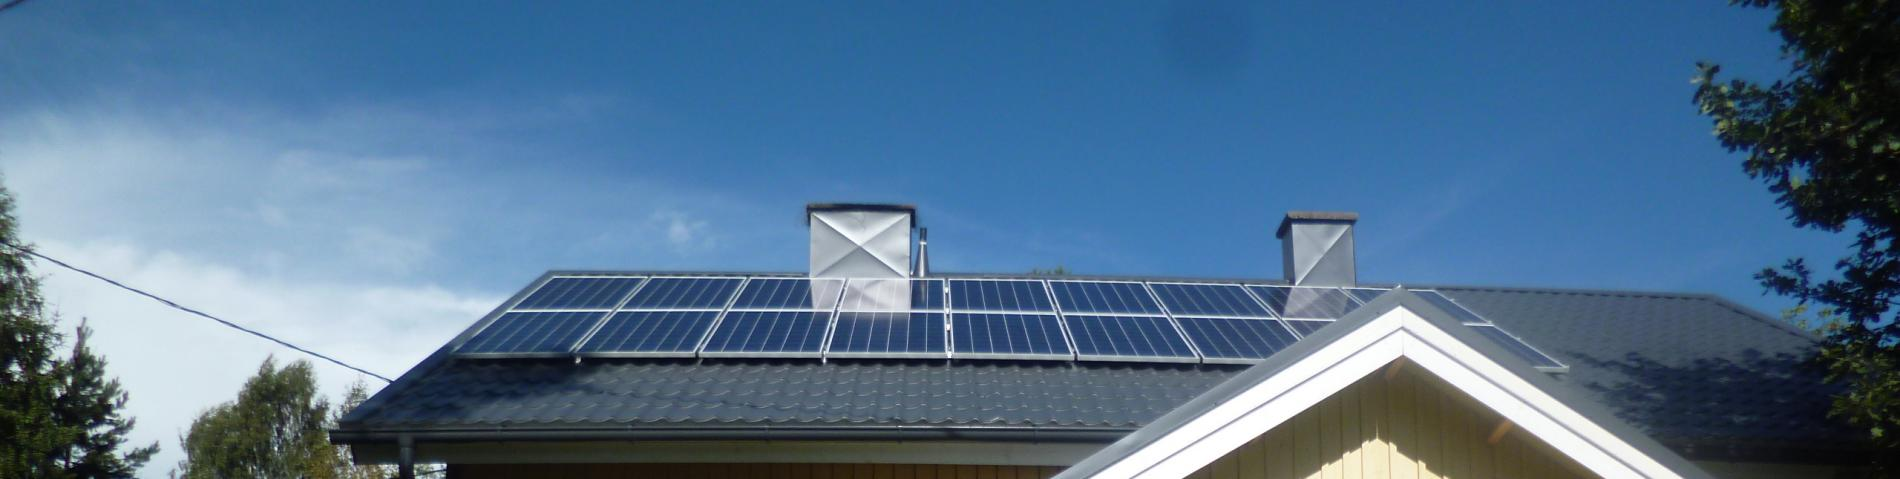 Newly installed PV system in Finland